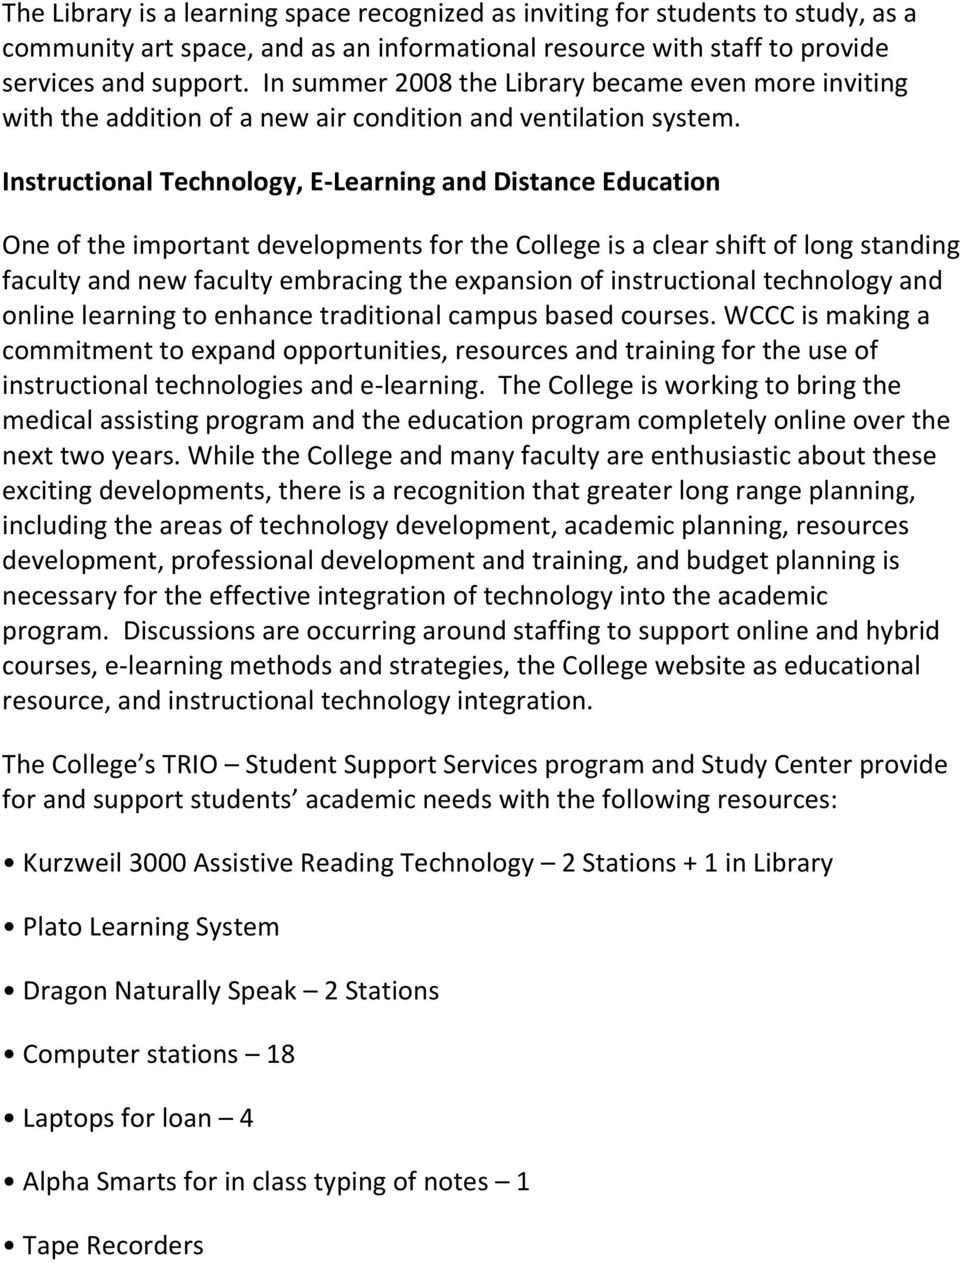 Instructional Technology, E-Learning and Distance Education One of the important developments for the College is a clear shift of long standing faculty and new faculty embracing the expansion of